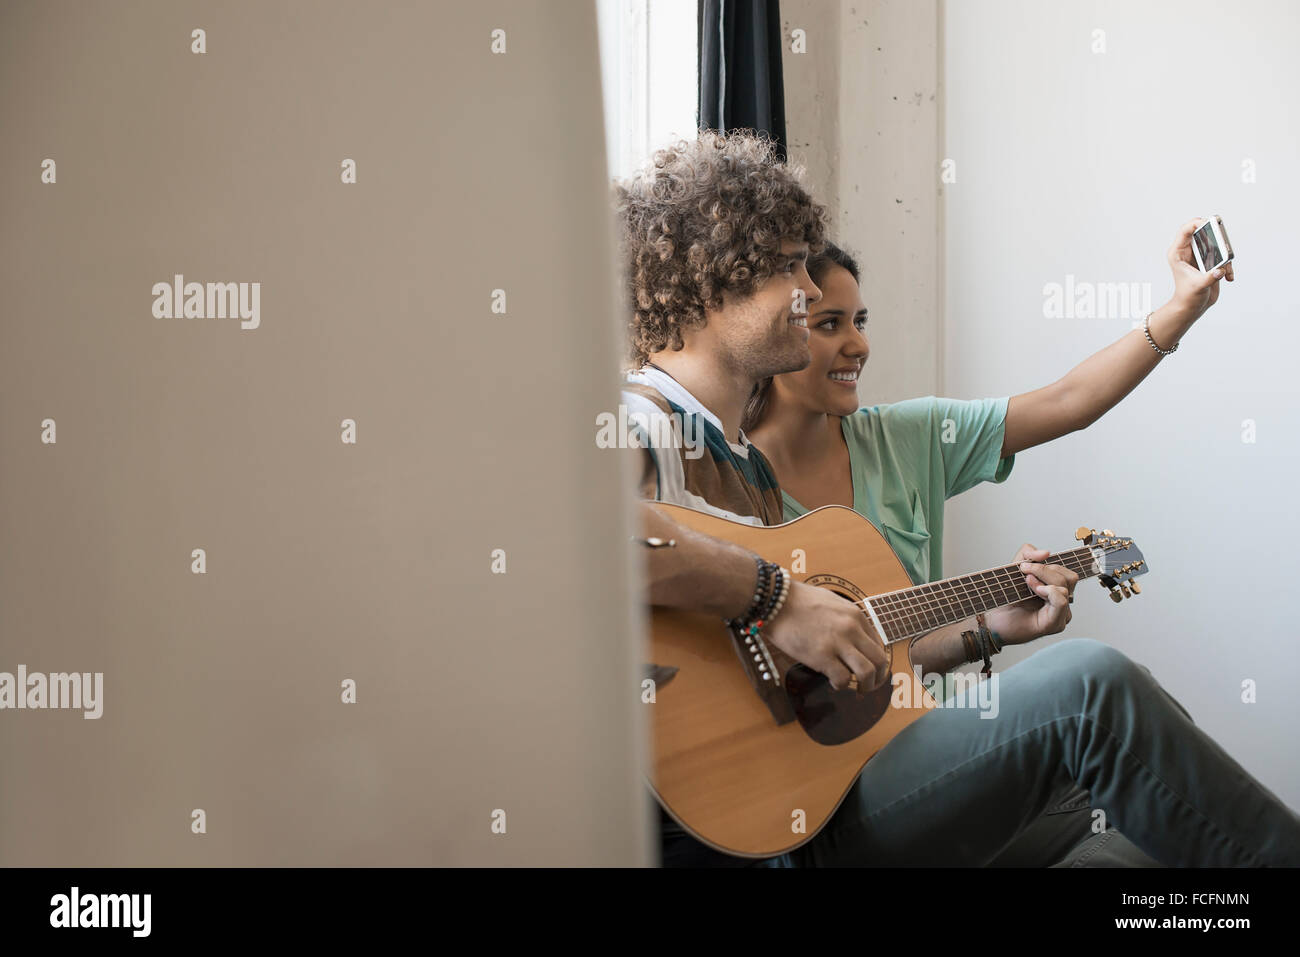 Loft living. A young man playing guitar and a woman beside him taking a selfy with a smart phone. - Stock Image